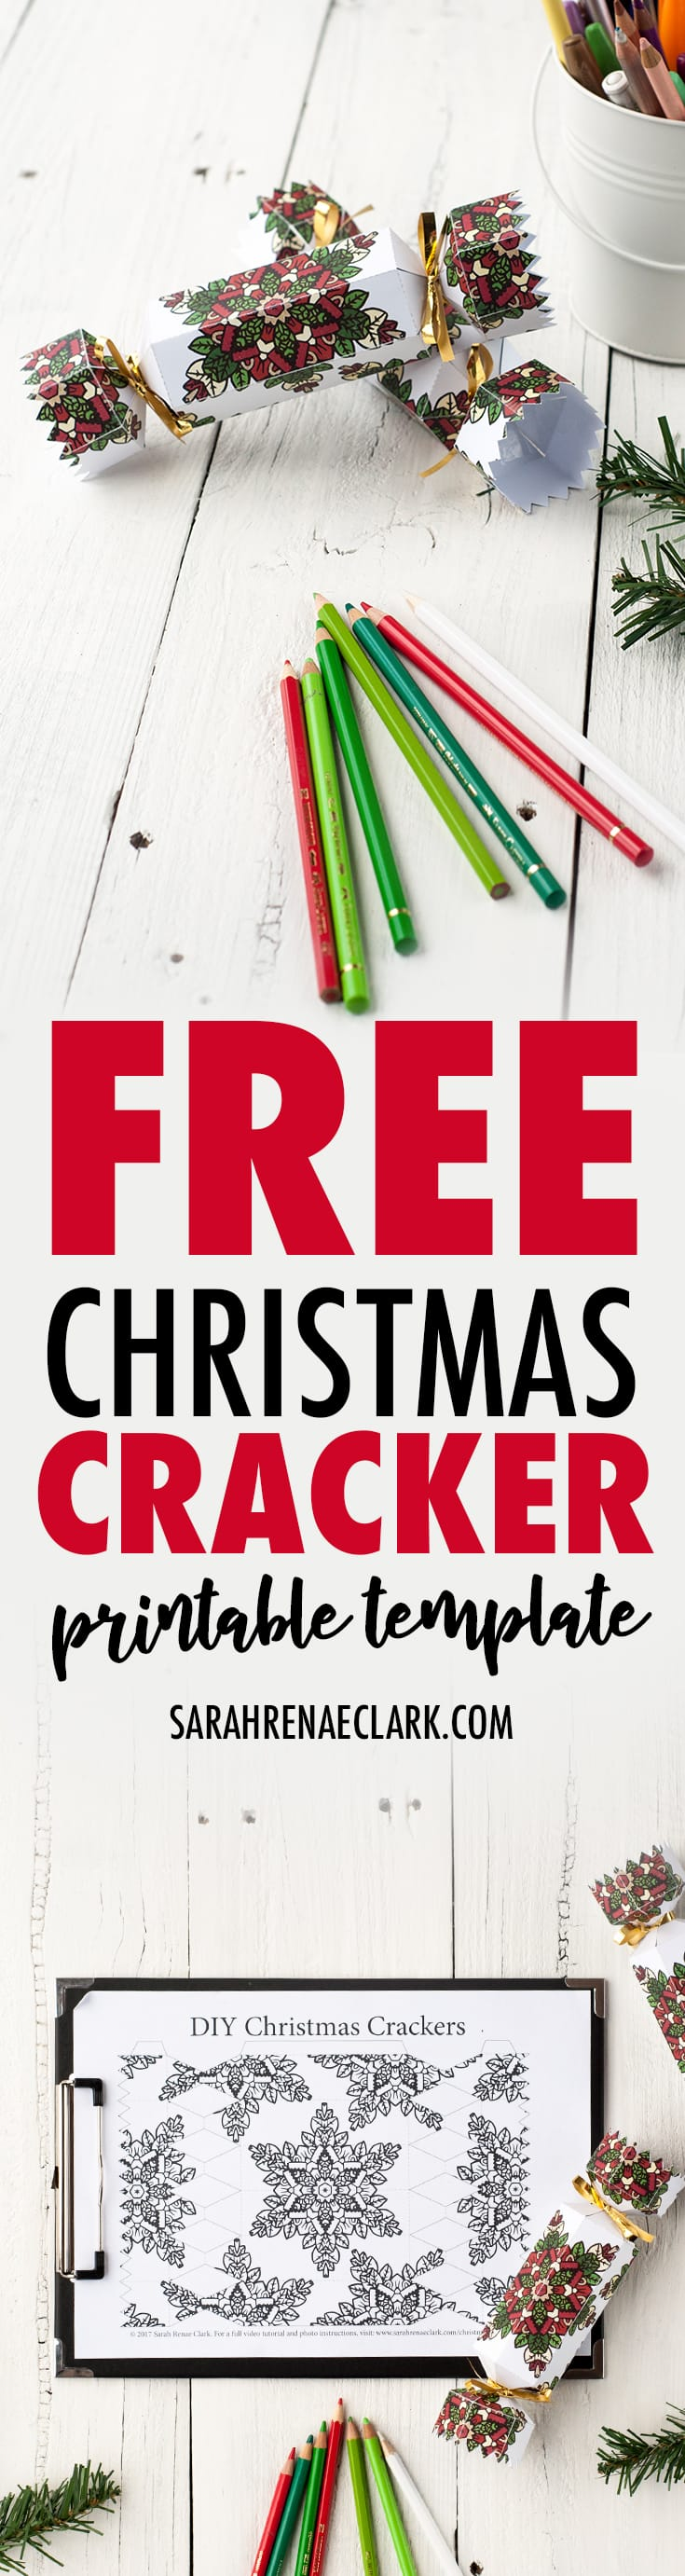 Get this FREE template to make your own Christmas crackers for a personalized DIY Christmas gift idea! Read more at sarahrenaeclark.com/christmas-cracker #christmascracker #free #christmas